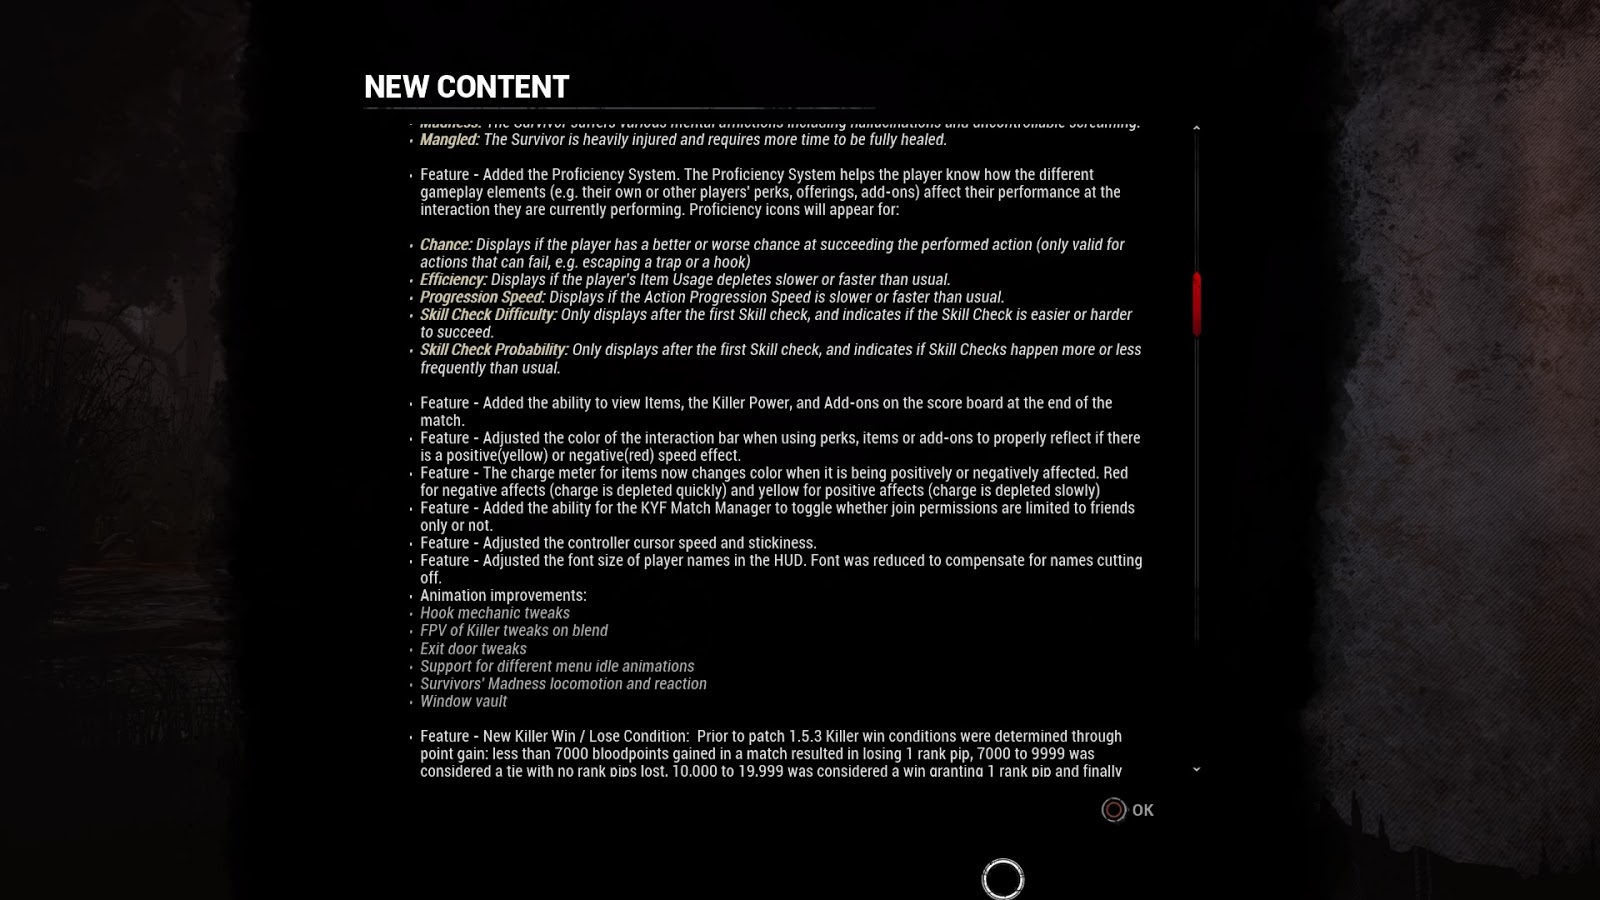 Dead by Daylight updates for Console - 23 Aug 2017 - Dr Jengo's World